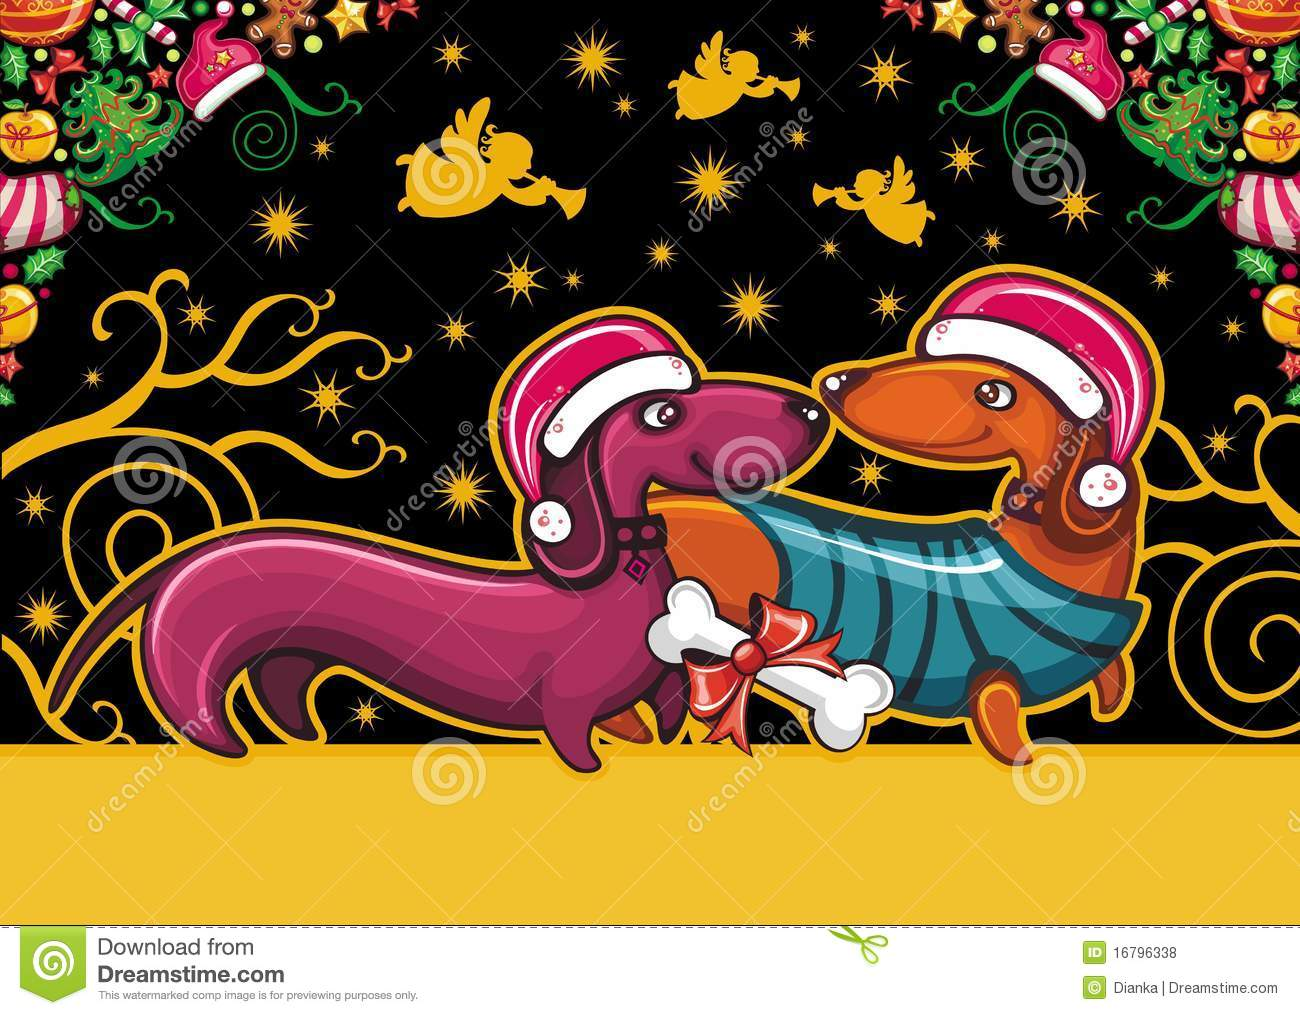 Christmas Dachshund Greeting Card Stock Vector Illustration Of